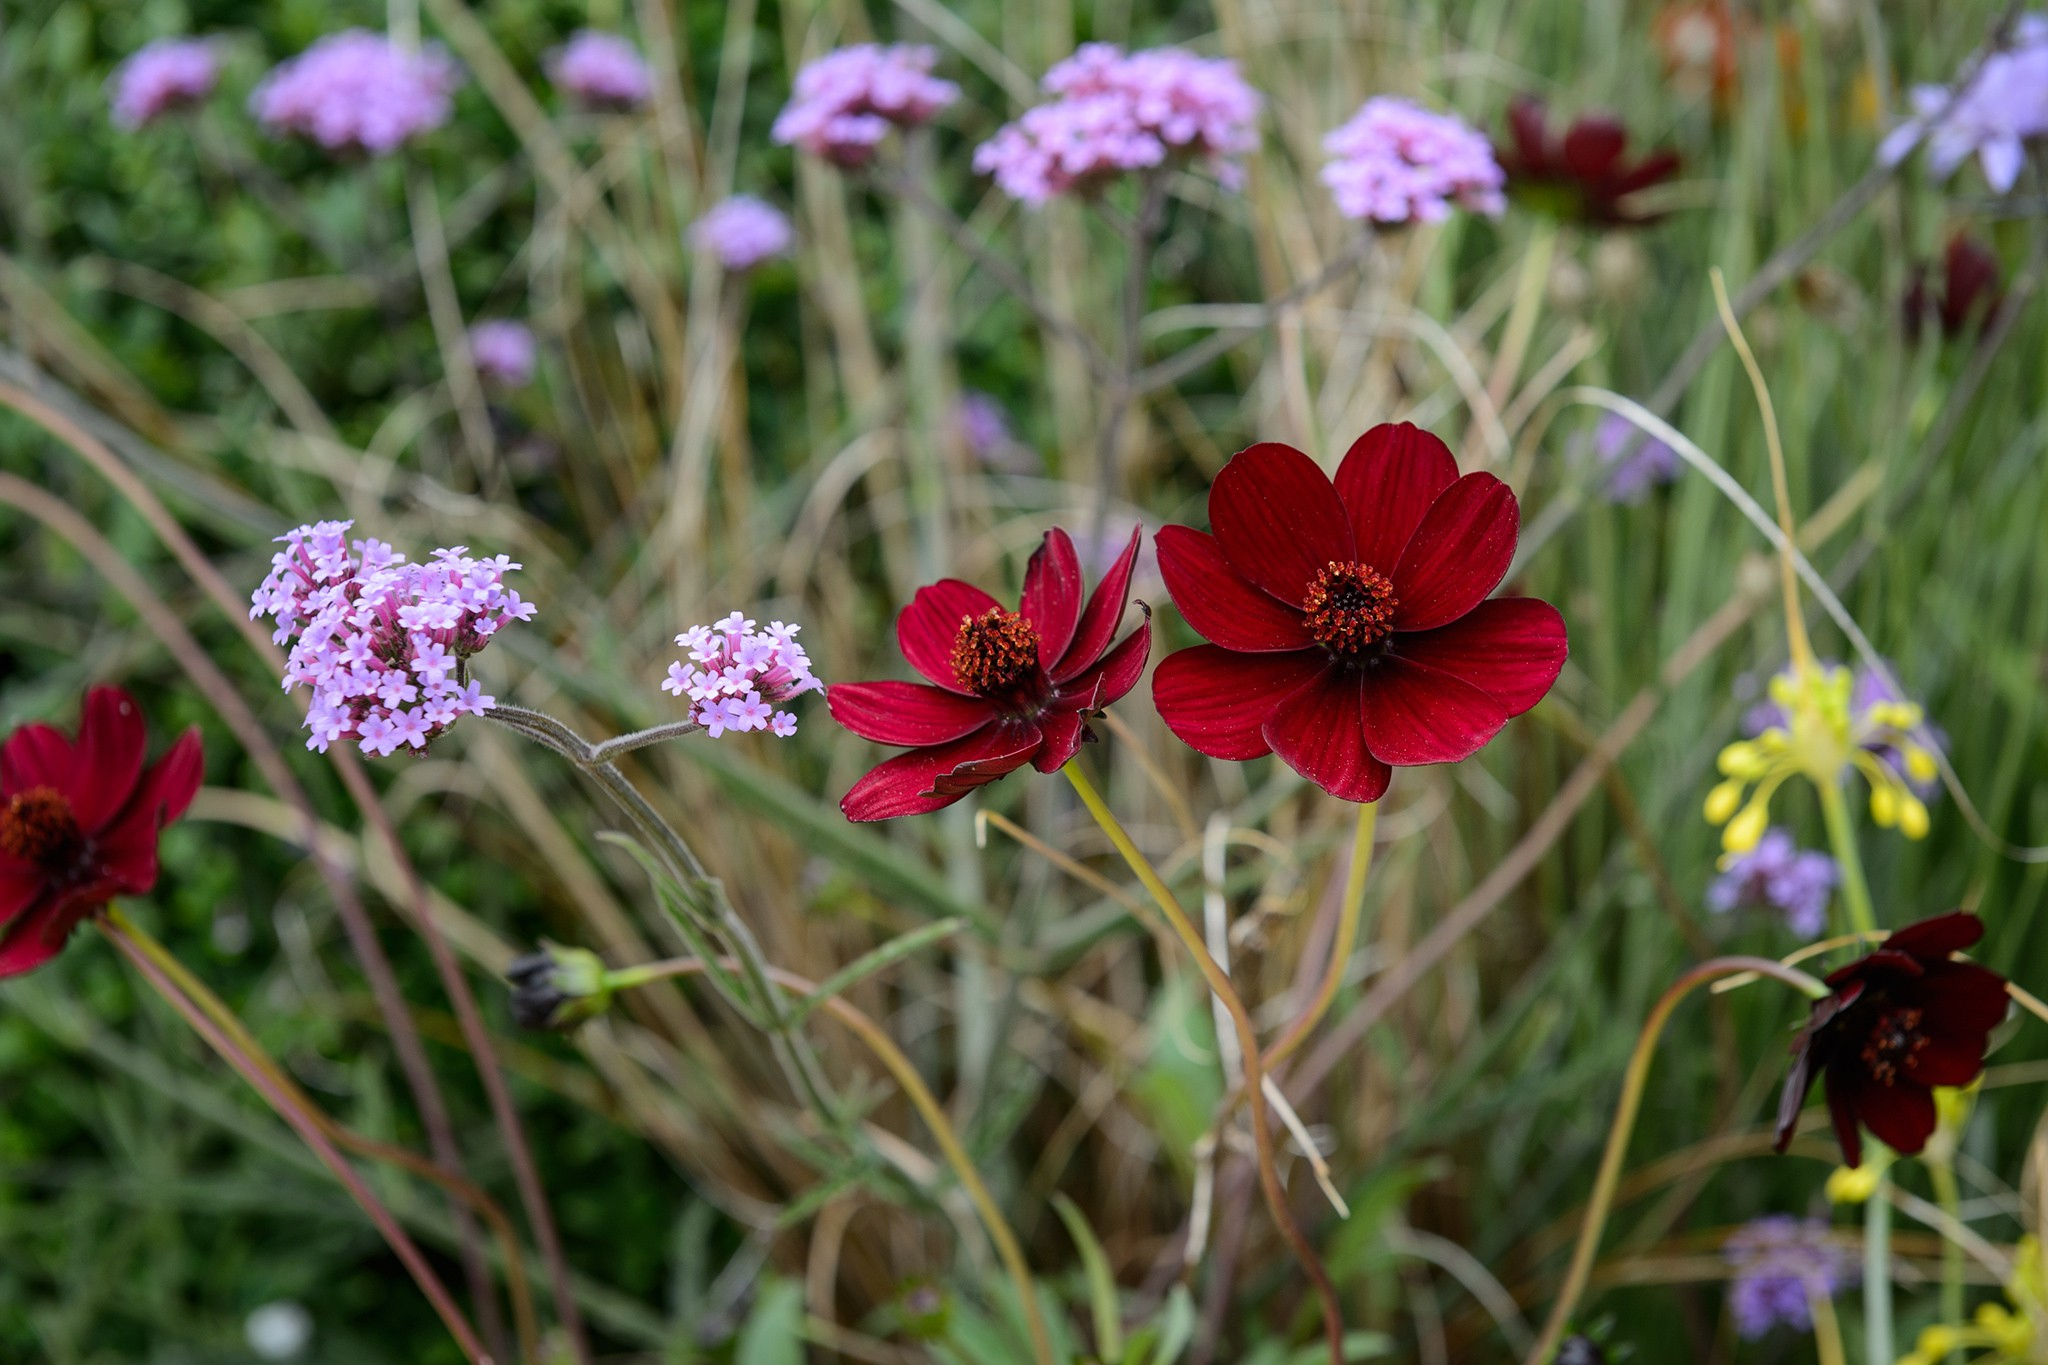 Features for wildlife - single flowers